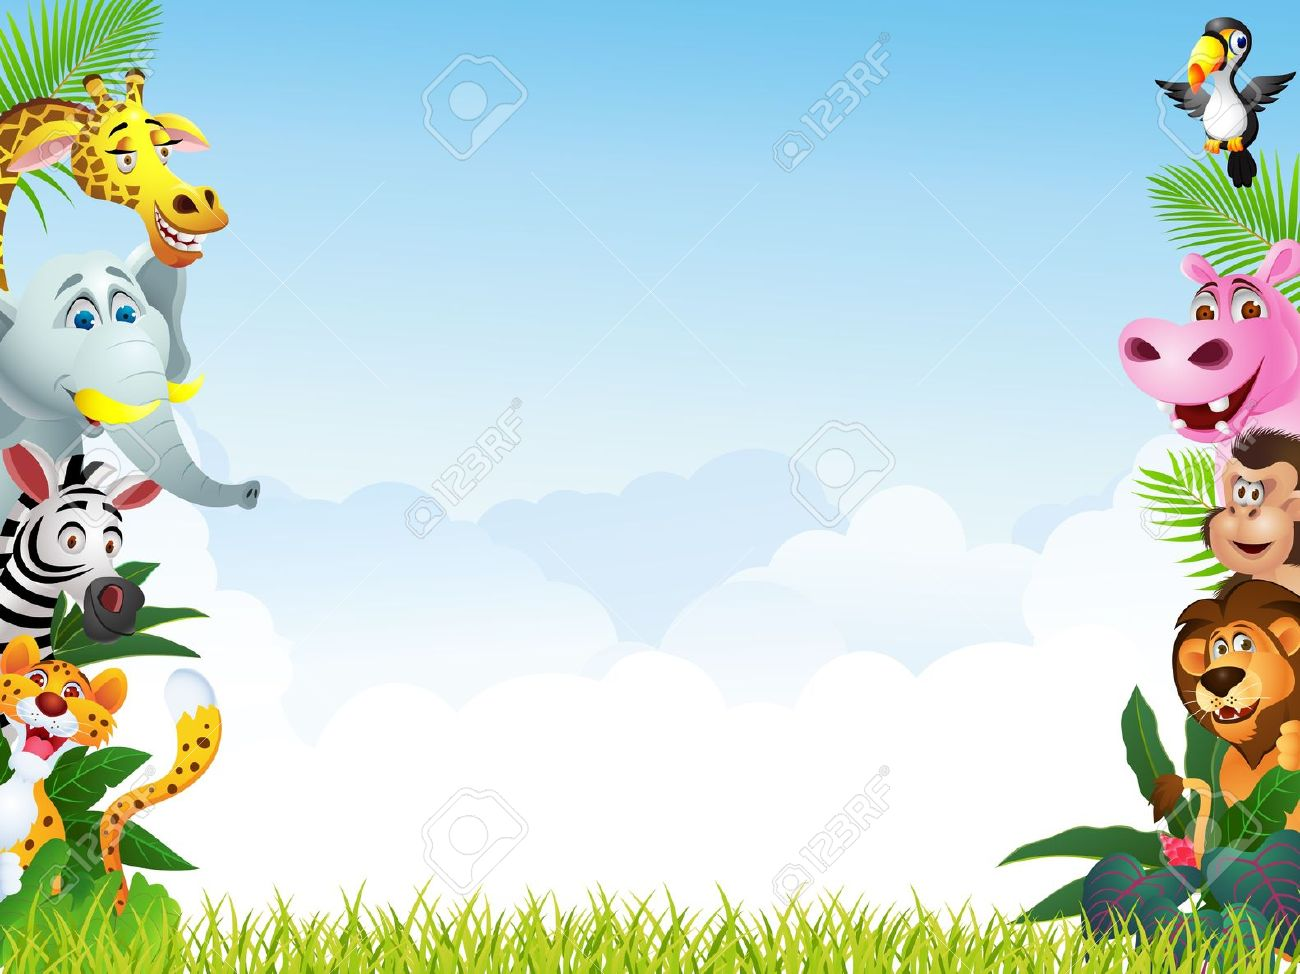 Animal Backgrounds Cliparts Download Clip Art 1300x974